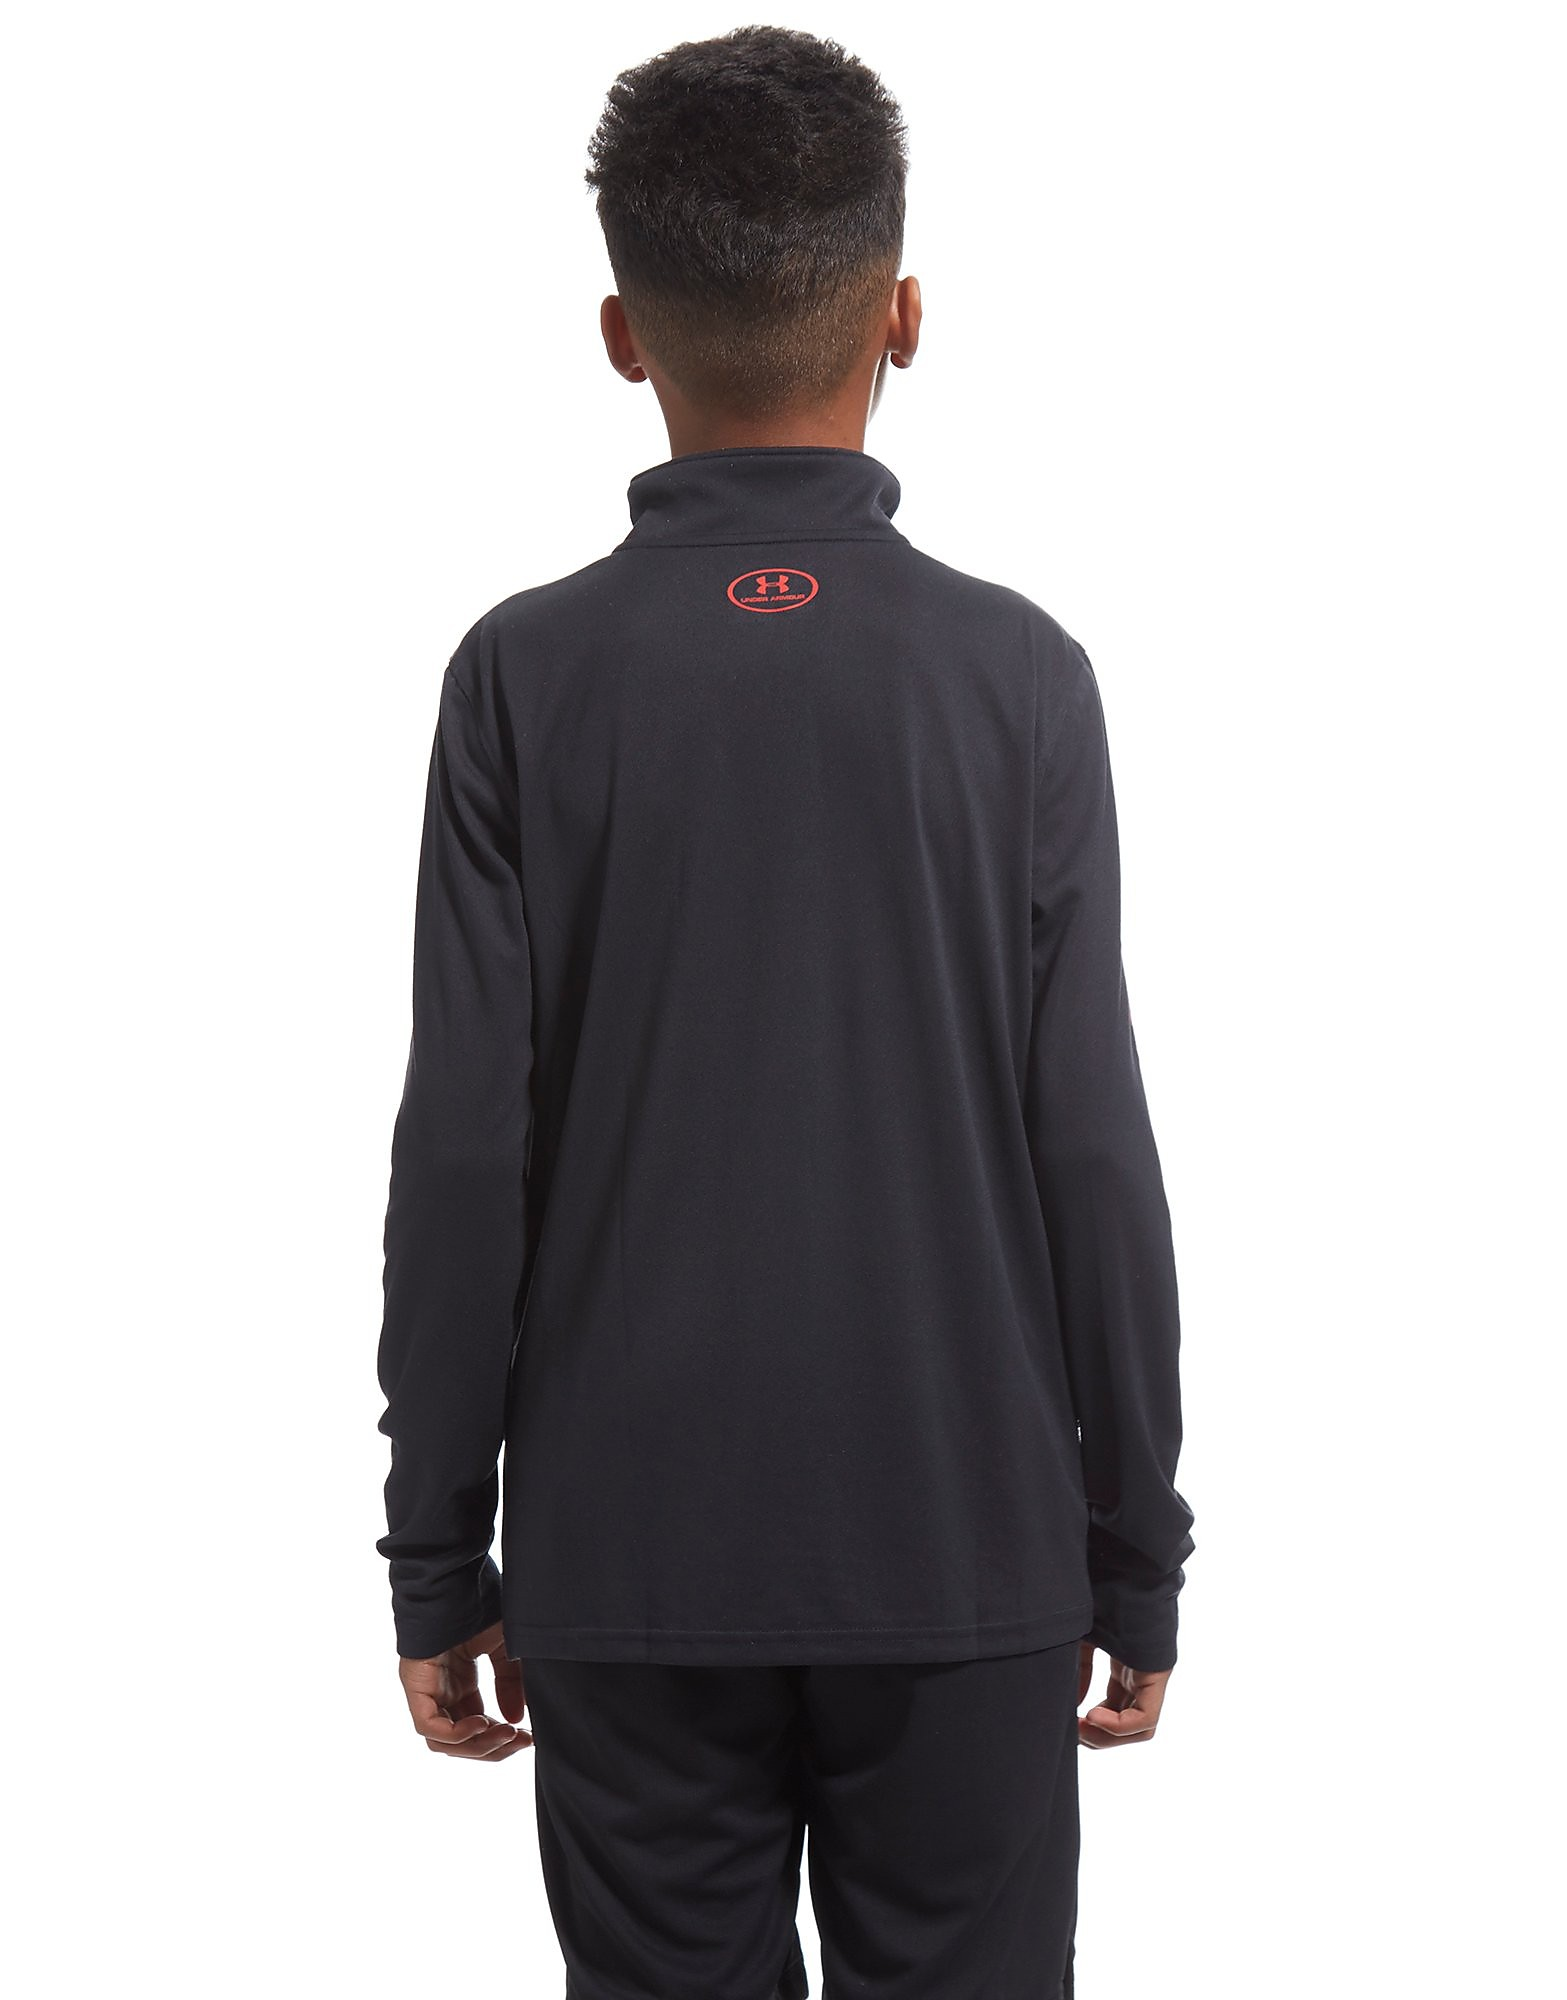 Under Armour Tech 1/4 Zip Top Junior